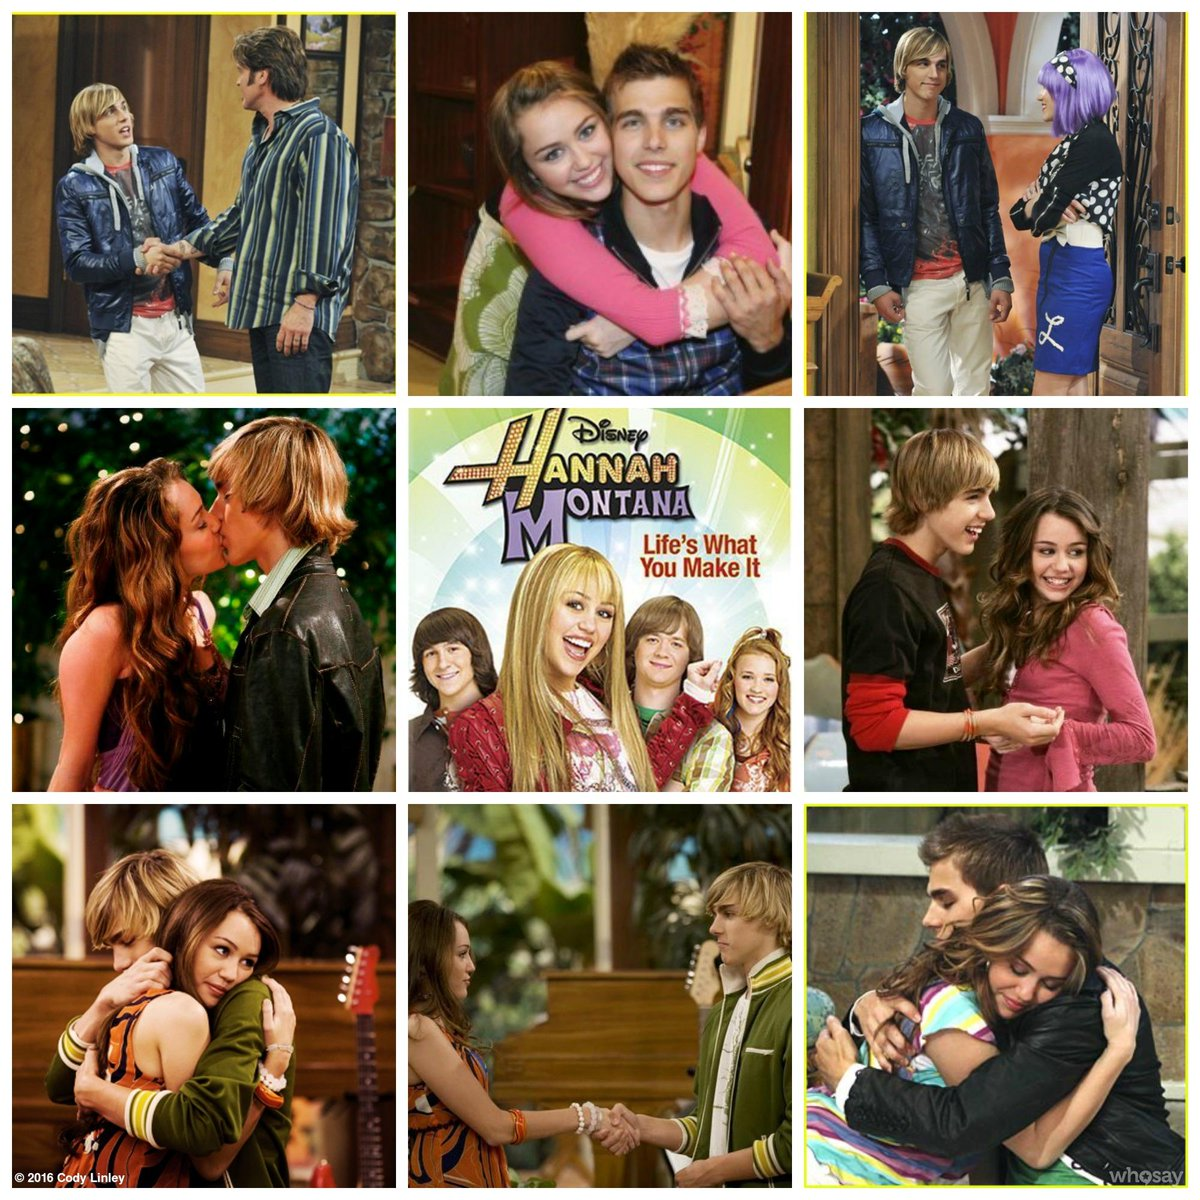 Happy10thAnniversaryFans I'm Facebook streaming 2day at 4pm PST answering your questions!  #HannahMontana10 #TBT https://t.co/najYqZuqly